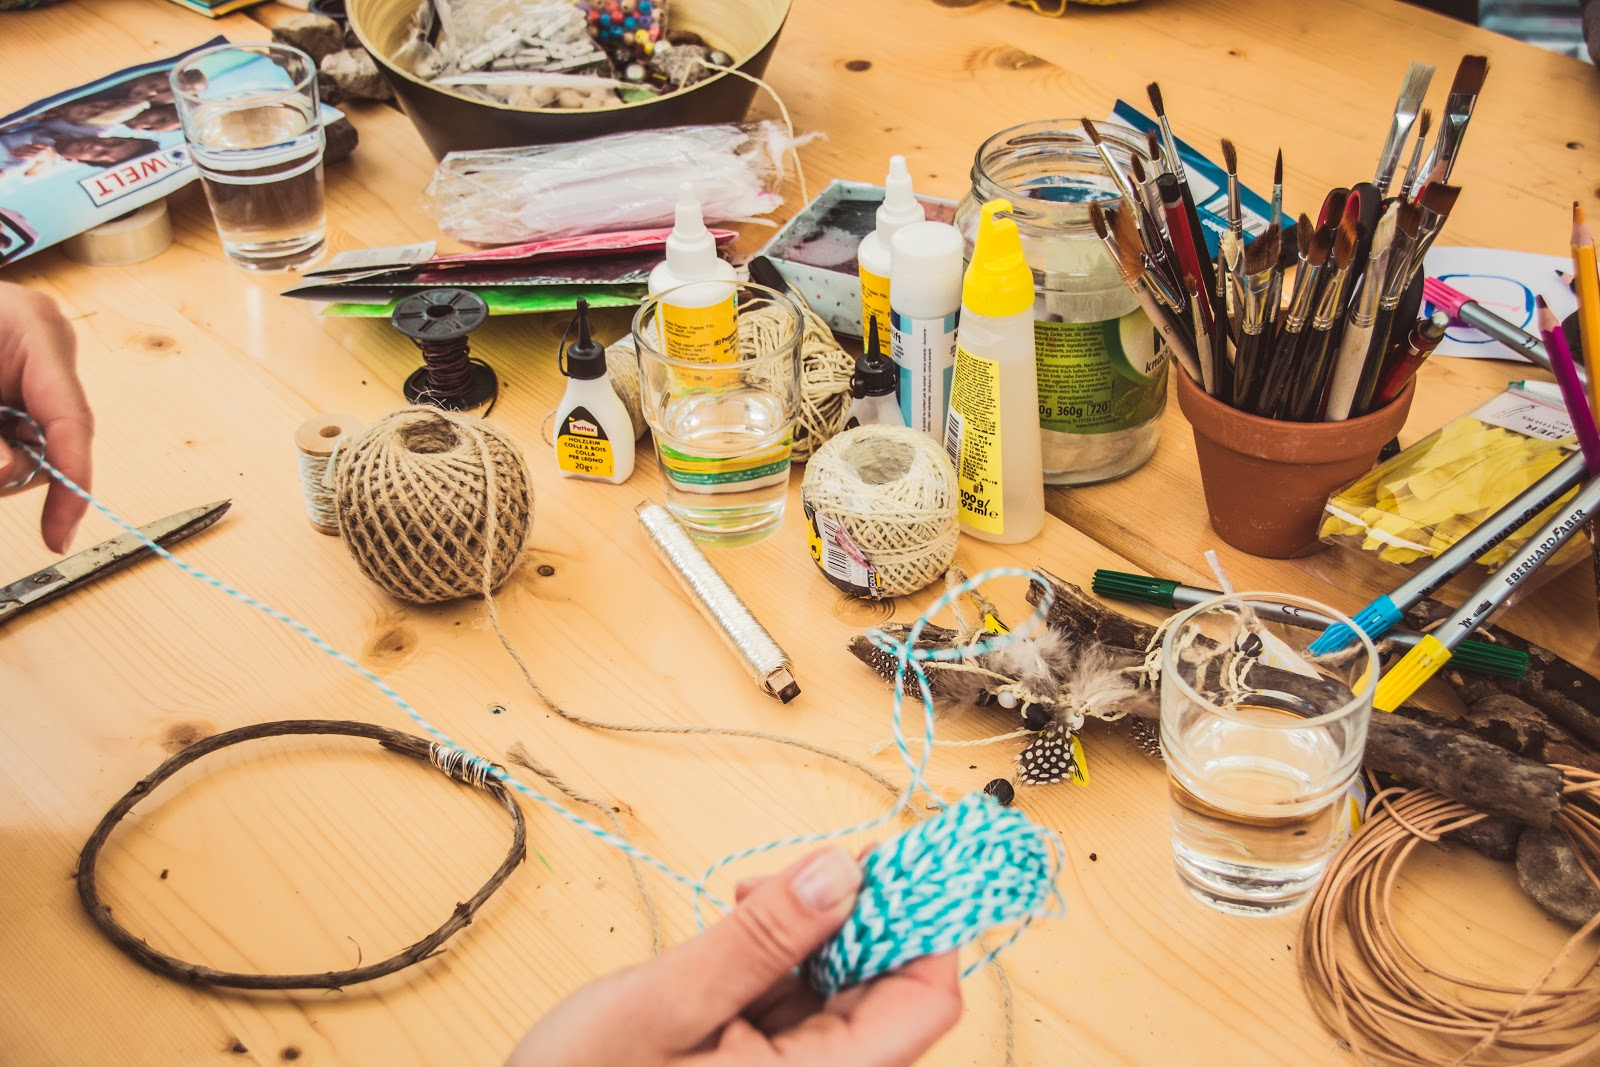 Five Awesome DIY Projects to Do at Home